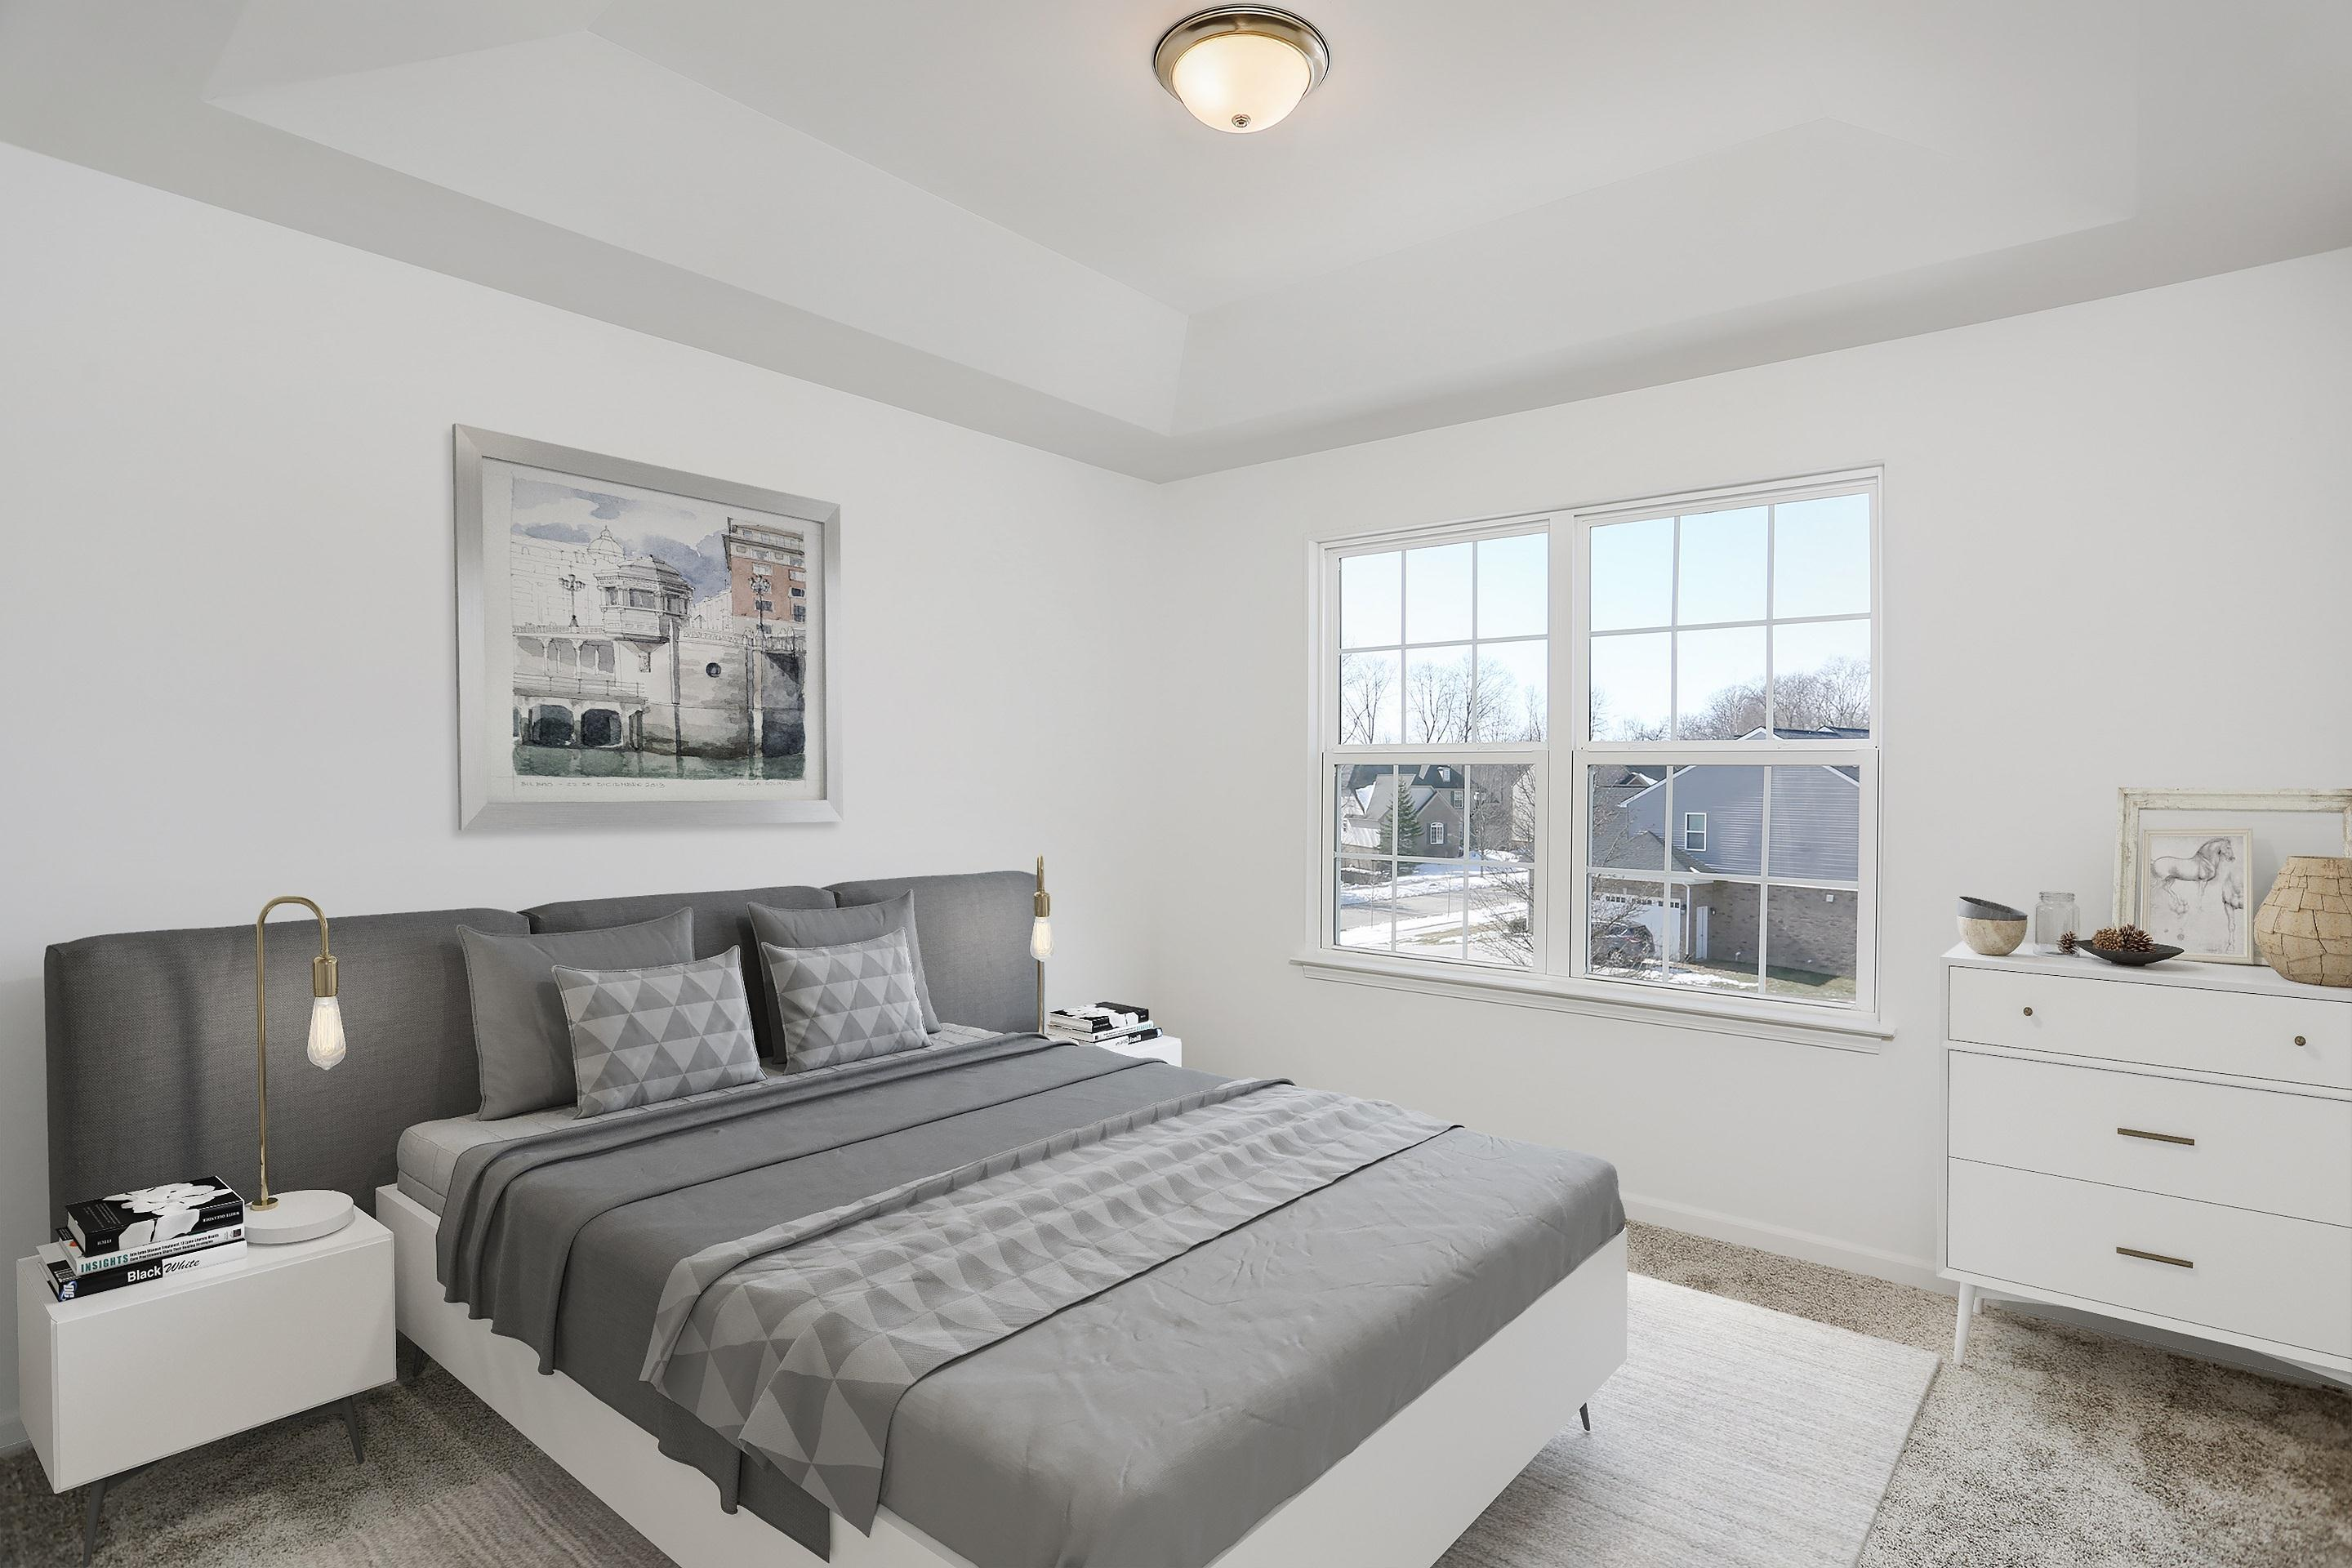 Bedroom featured in the Addison By Singh Homes in Detroit, MI